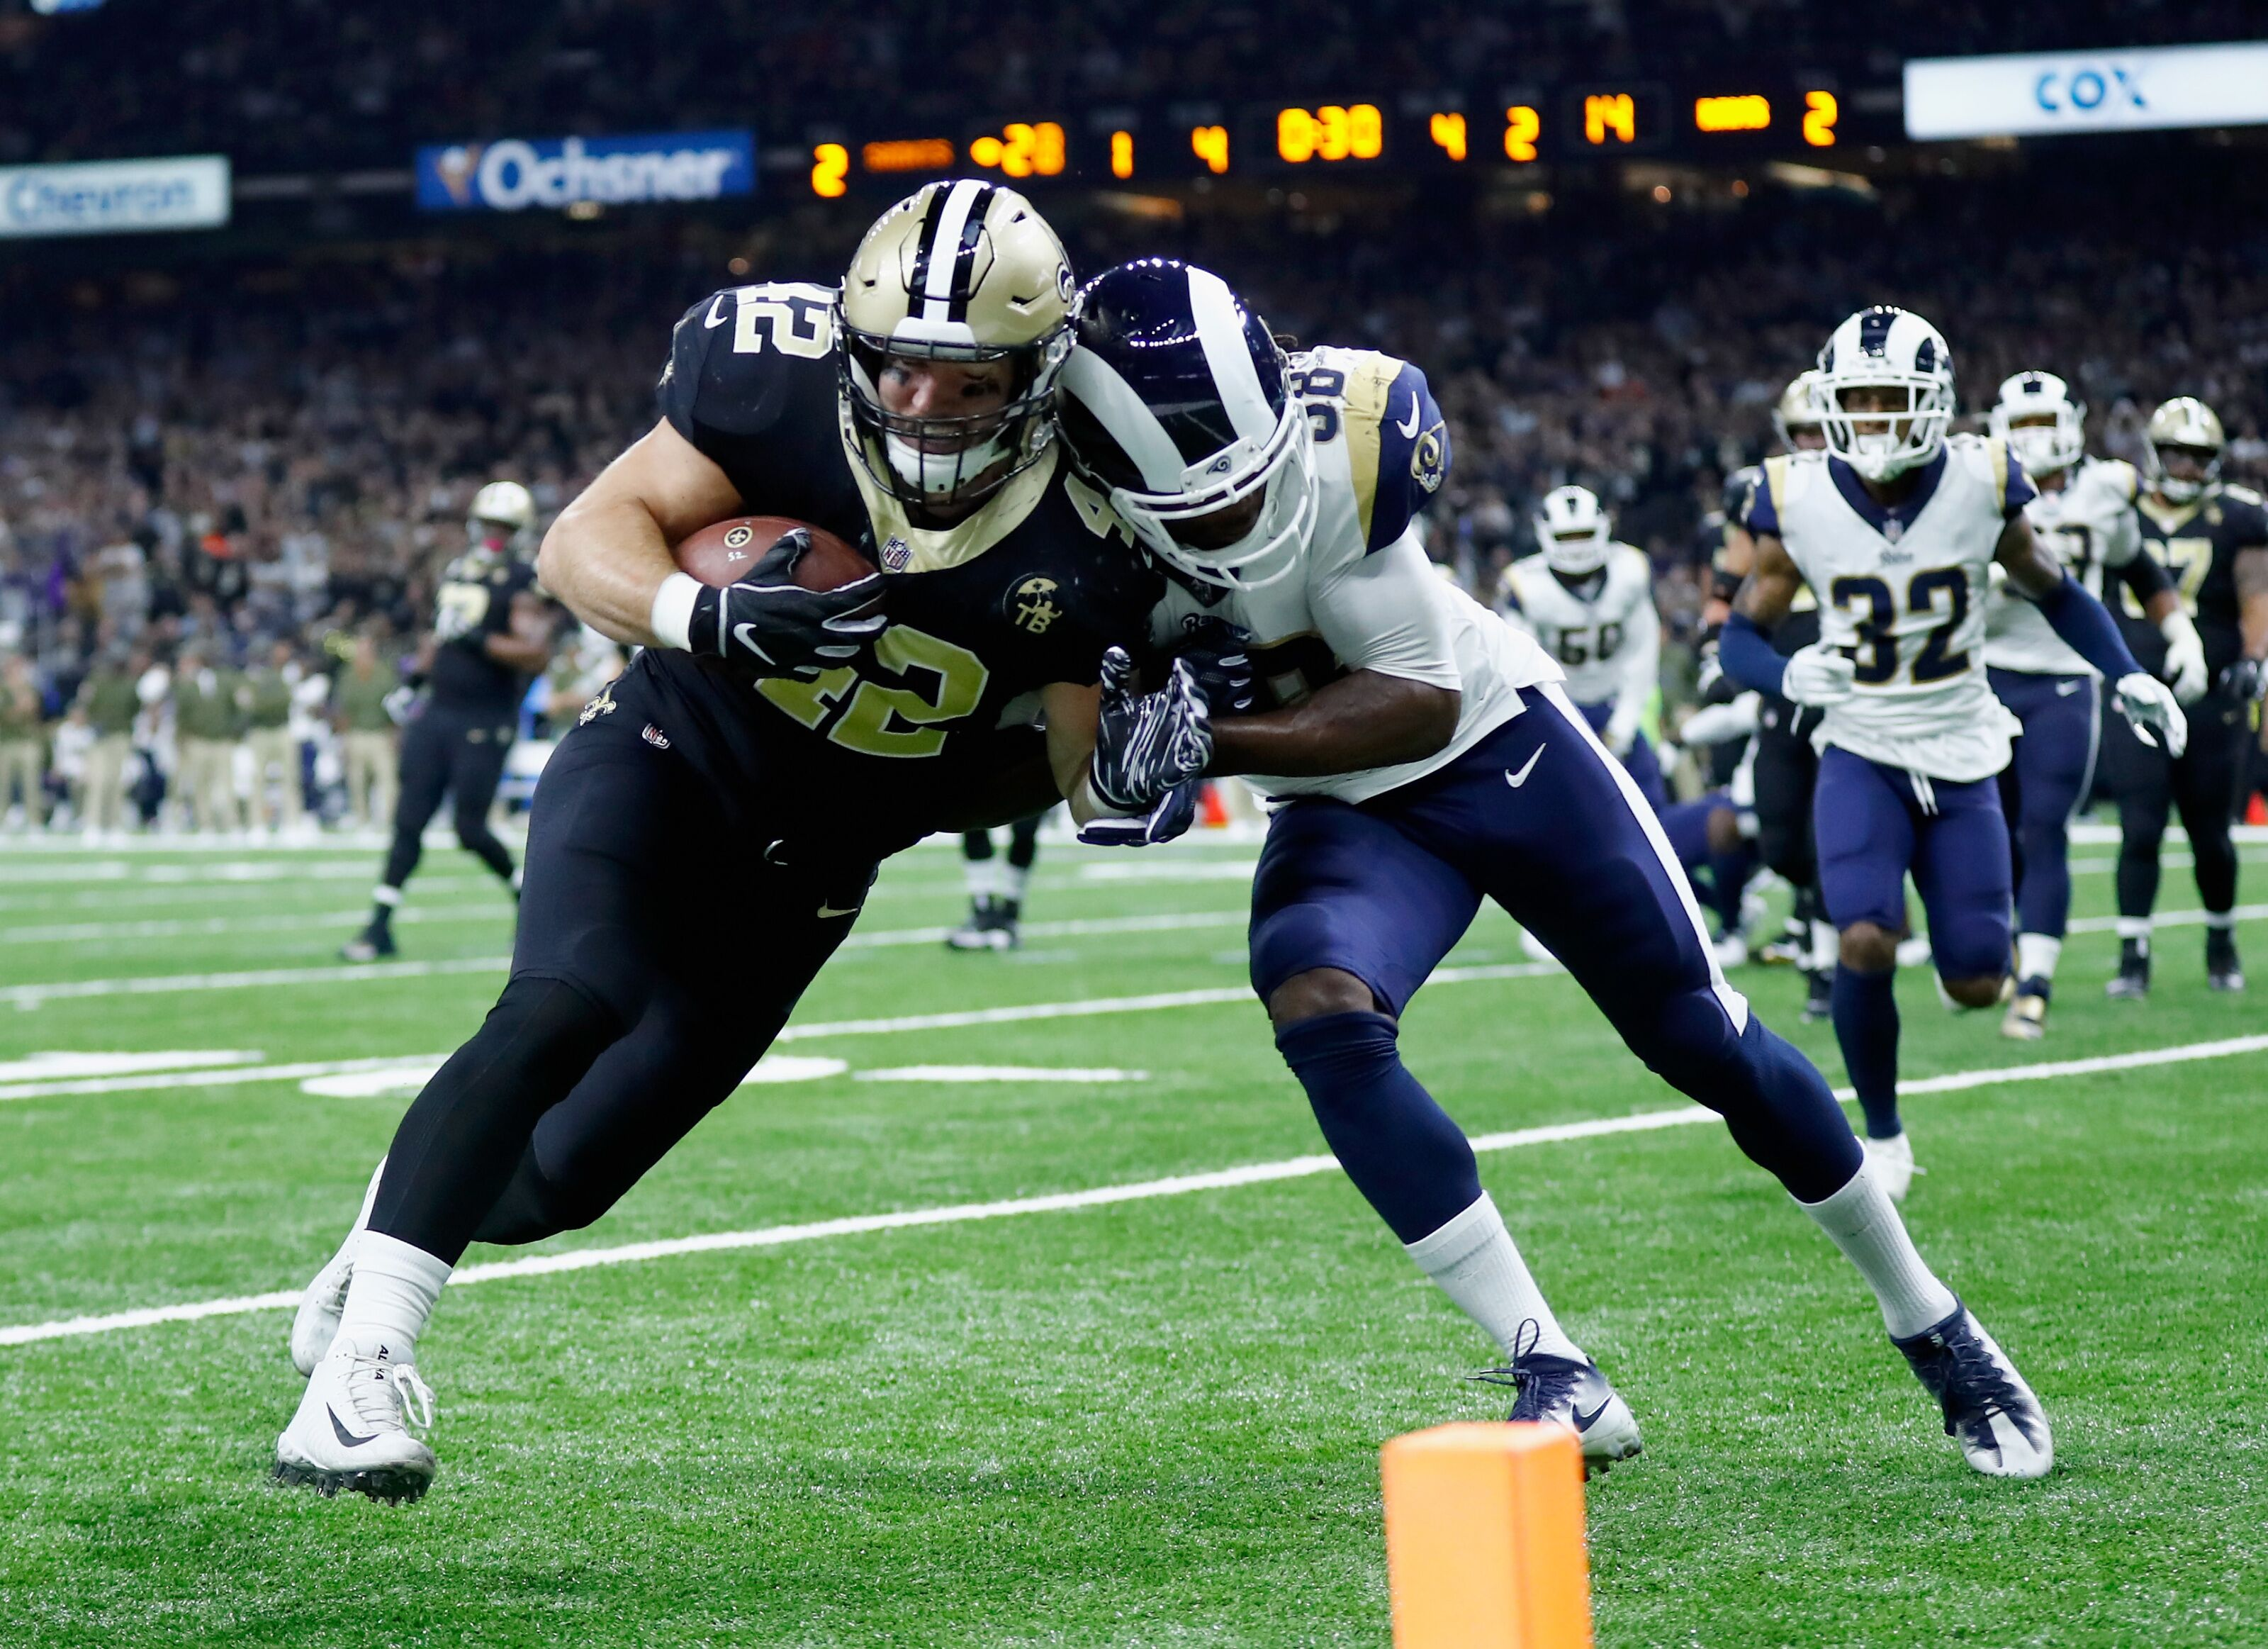 2019 New Orleans Saints 90-man roster: FBs, Zach Line